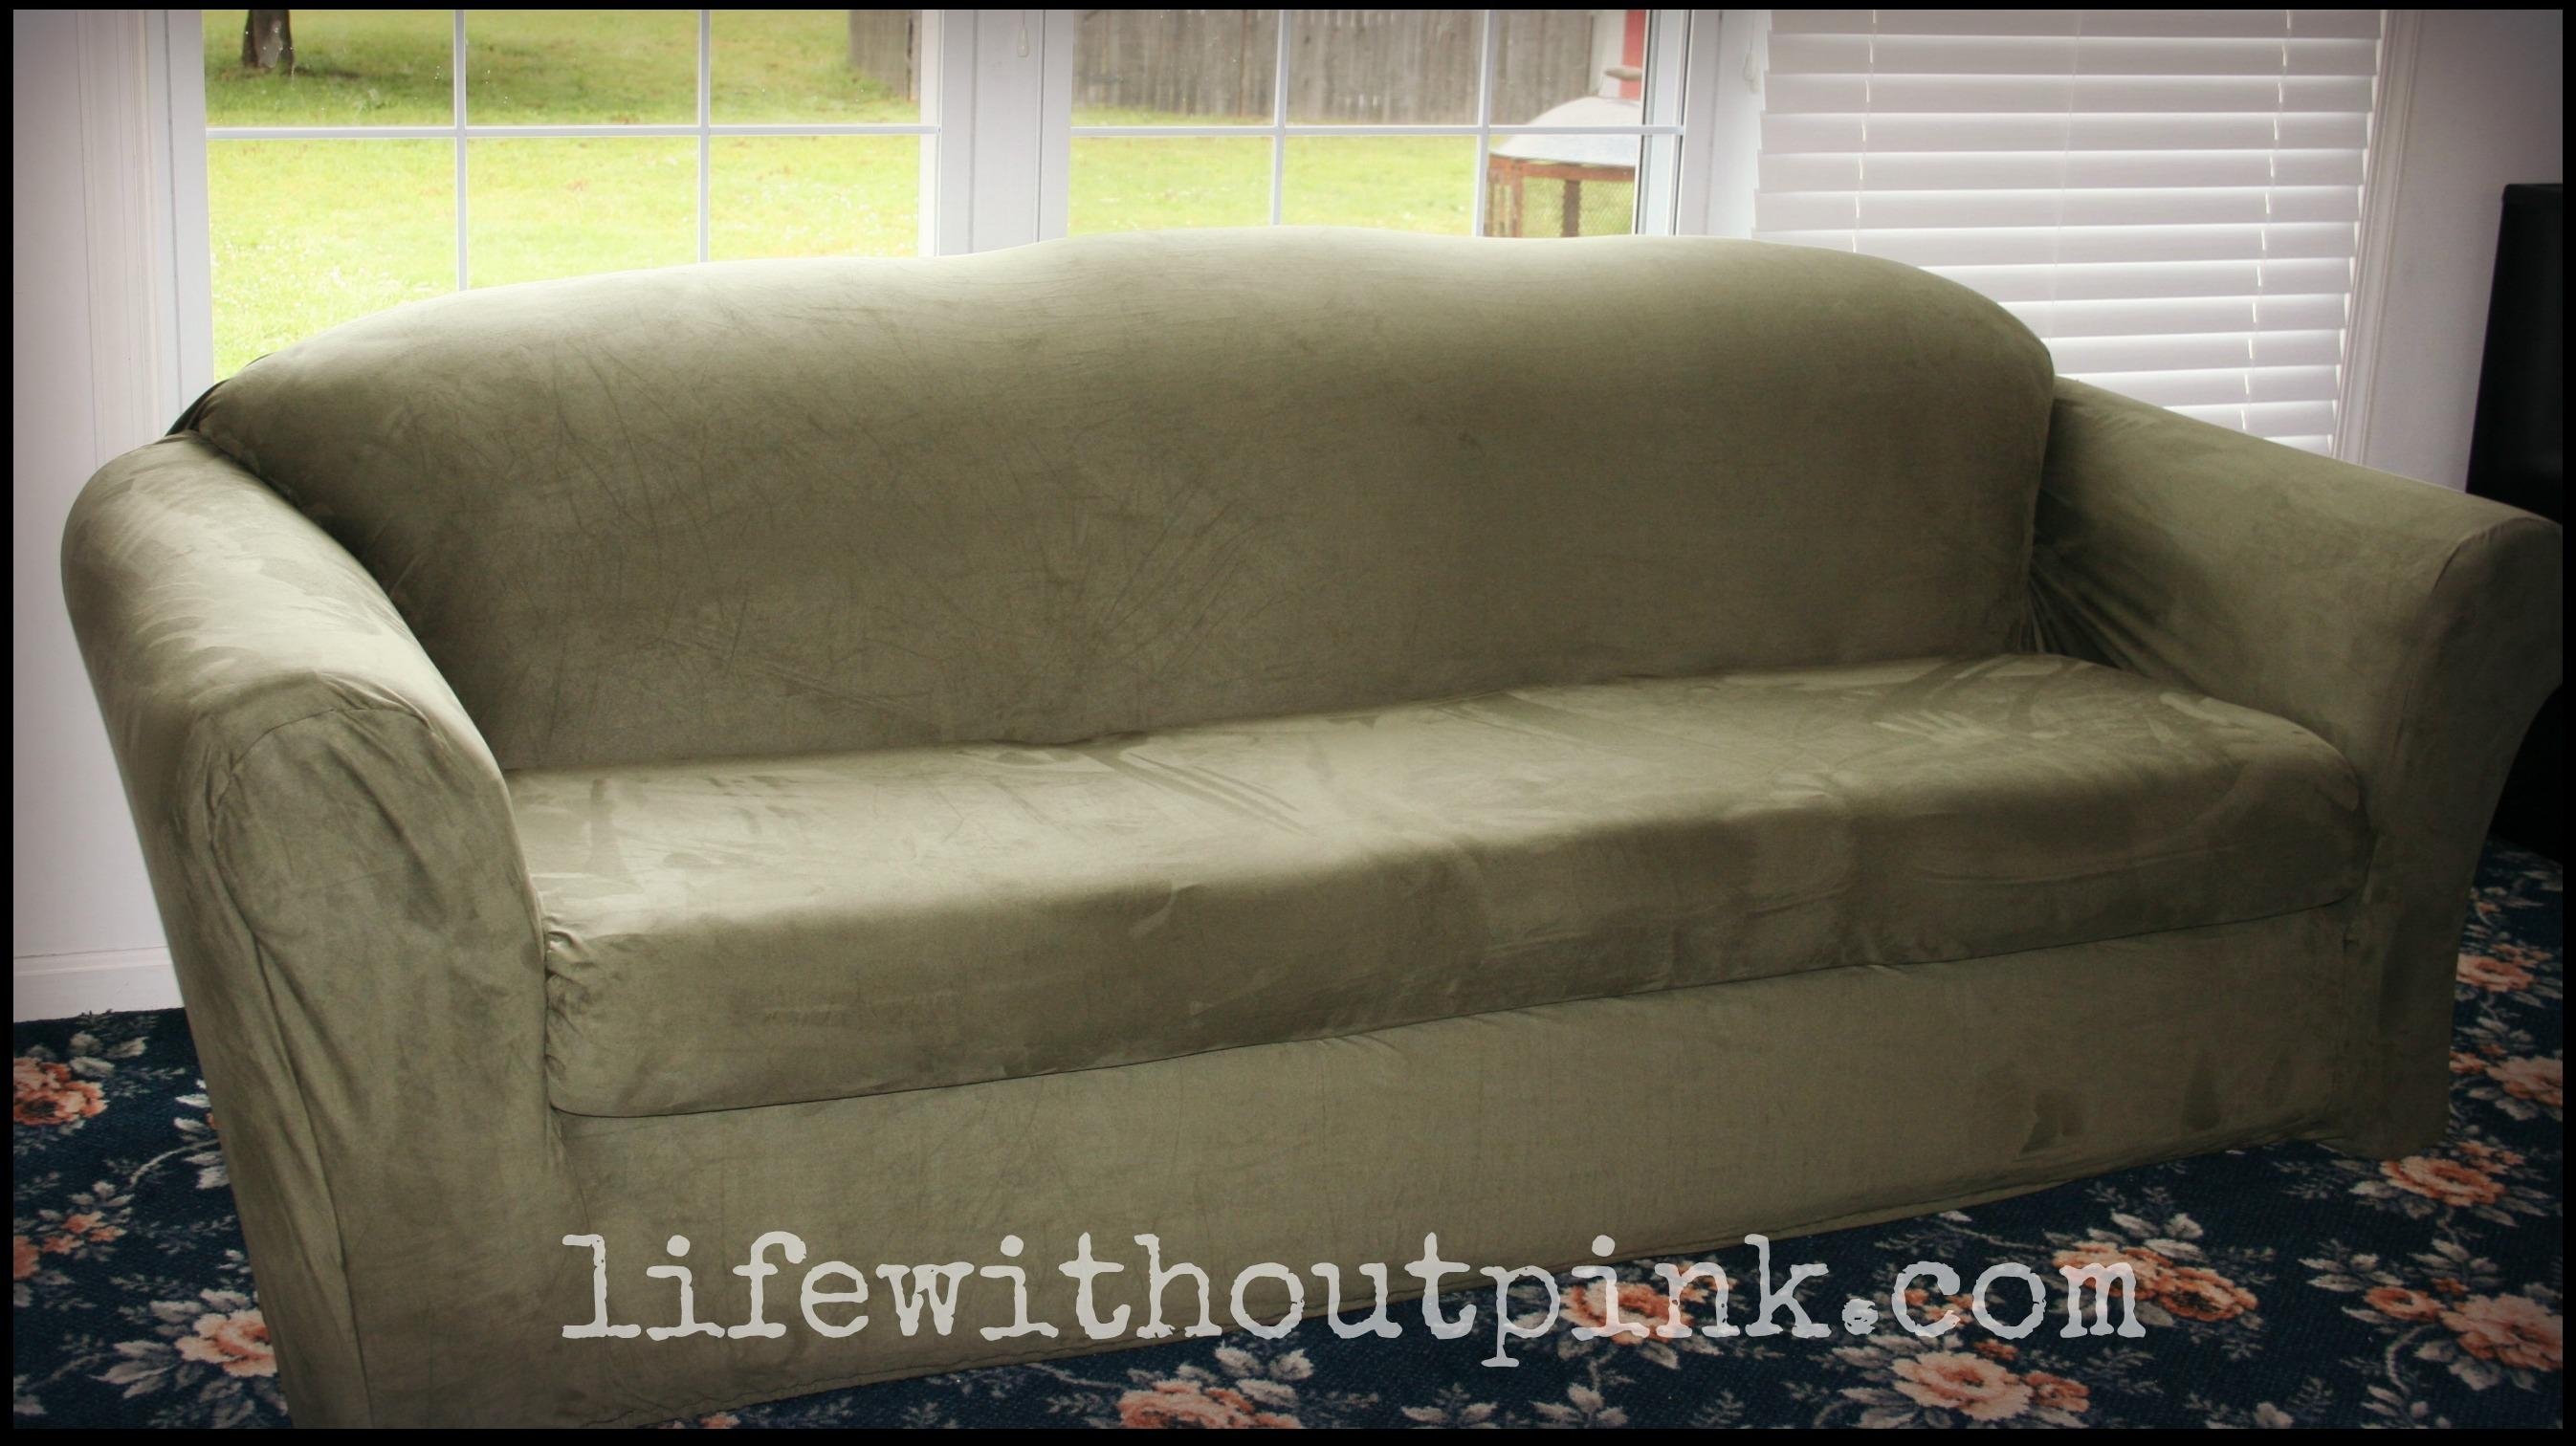 Sure Fit Slipcover Review {Video} | Life Without Pink Intended For Stretch Slipcover Sofas (Image 18 of 20)